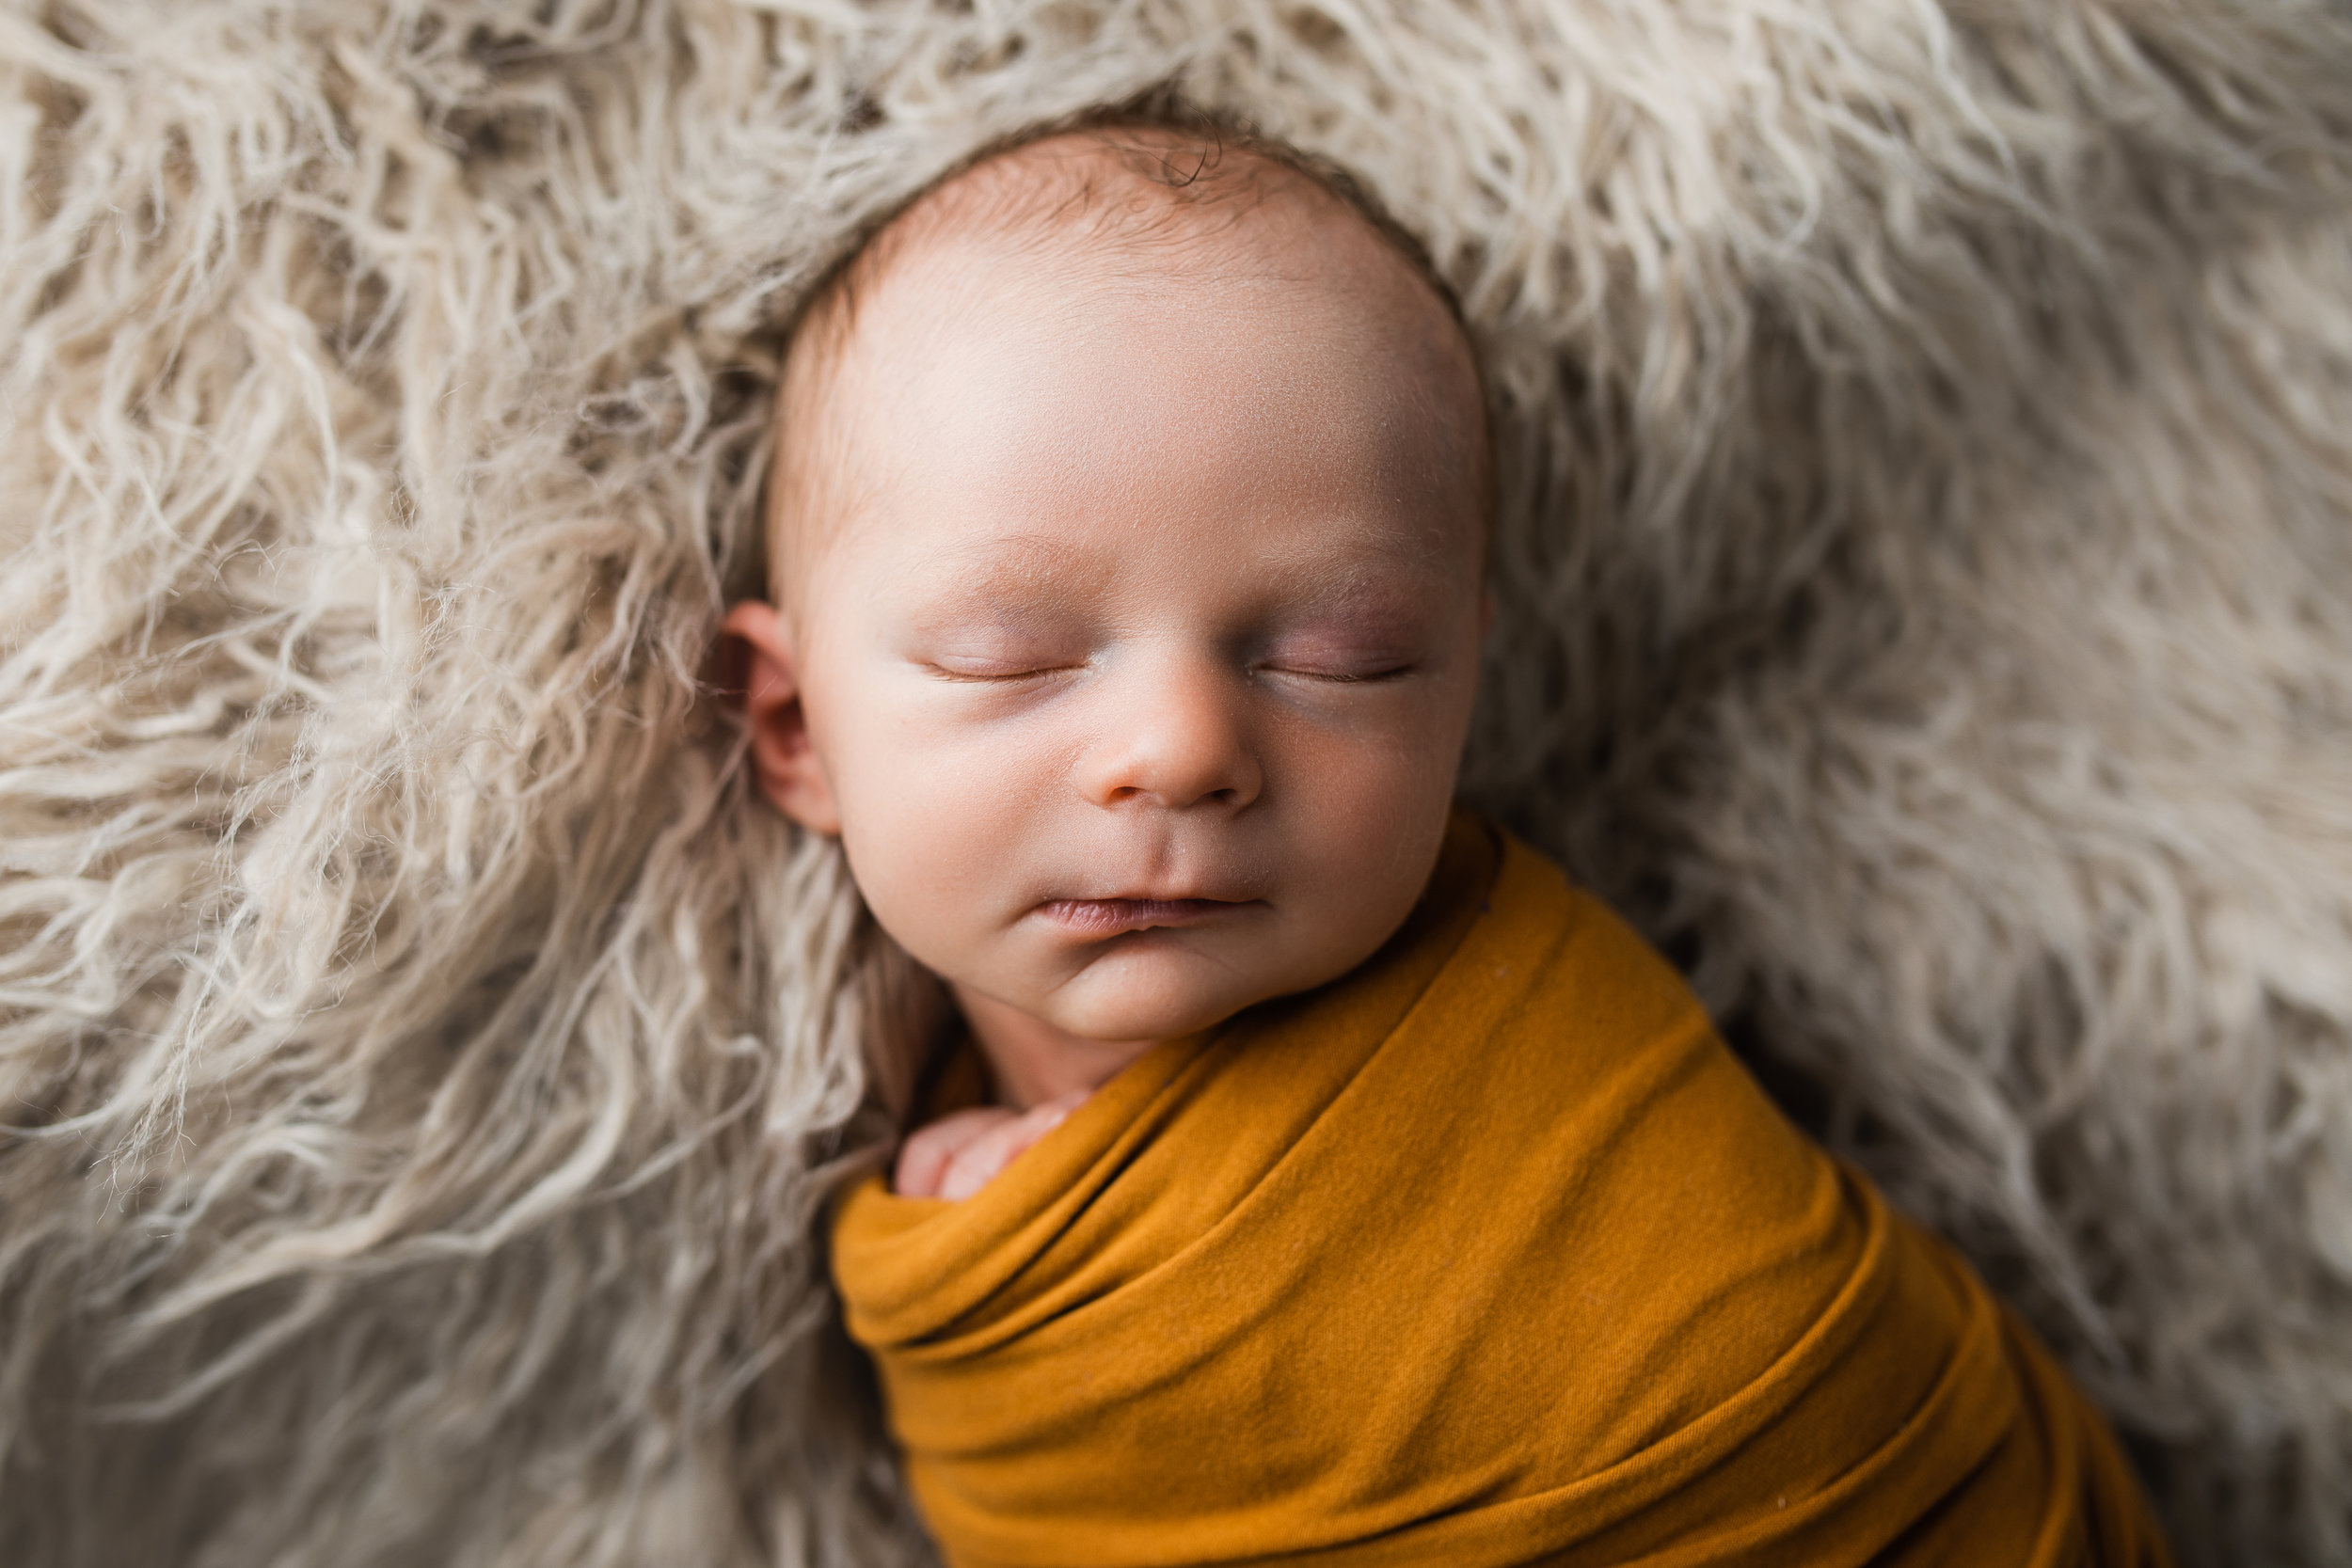 mount vernon columbus ohio newborn photographer (18).jpg